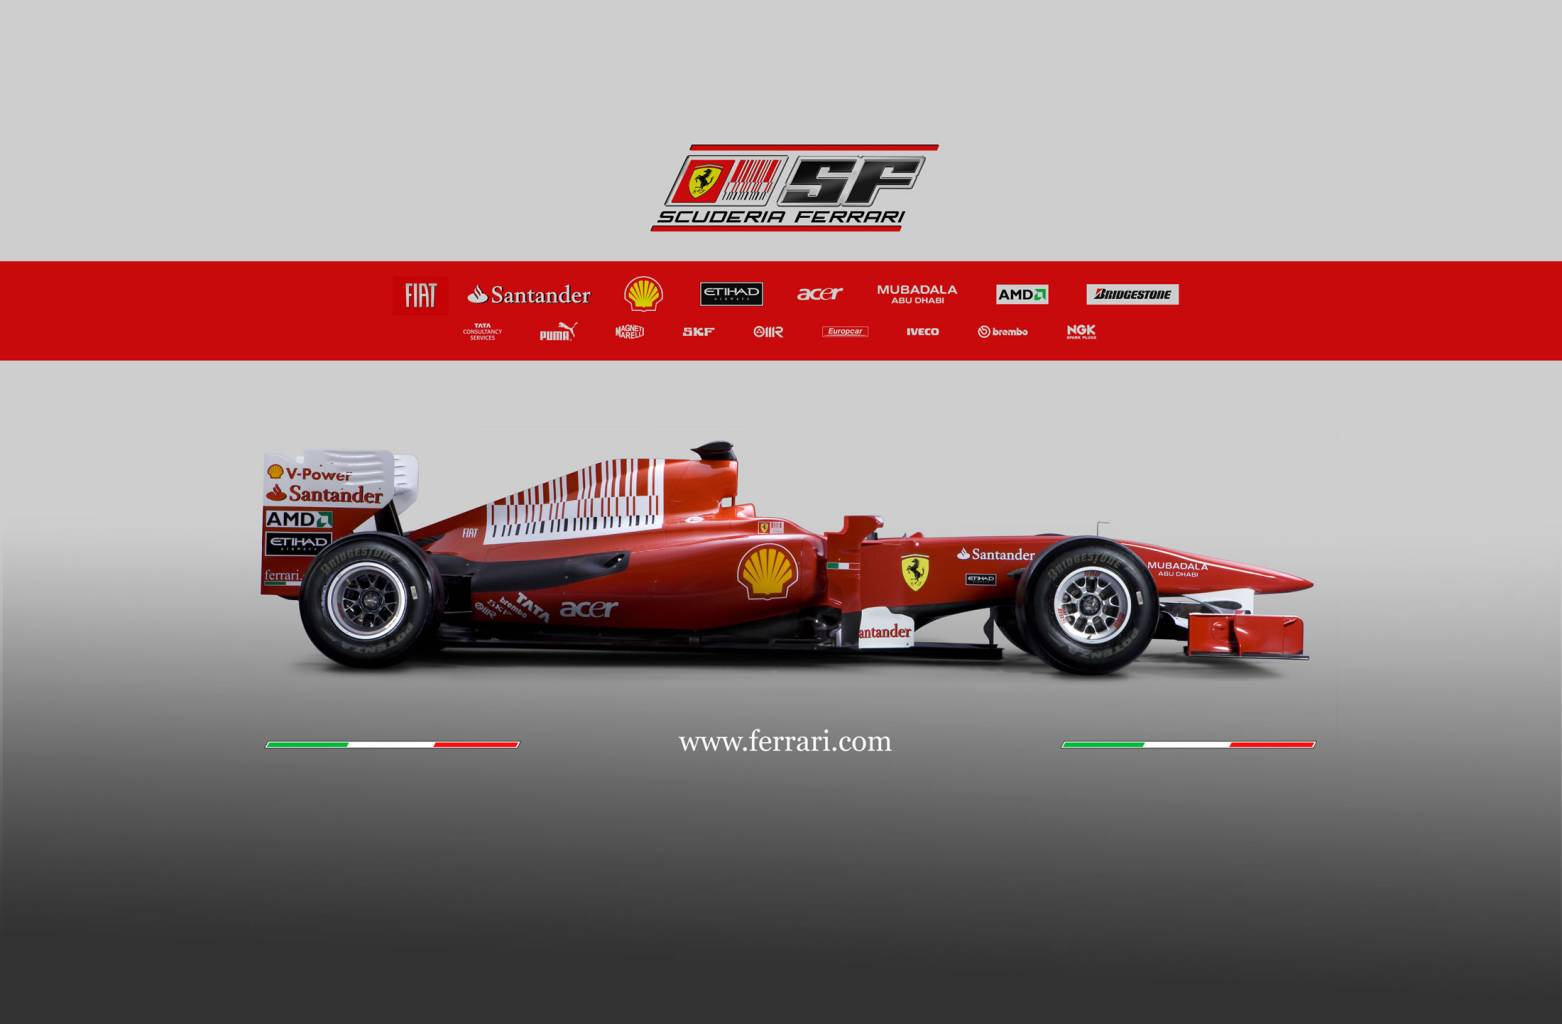 Ferrari Scuderia - Photos